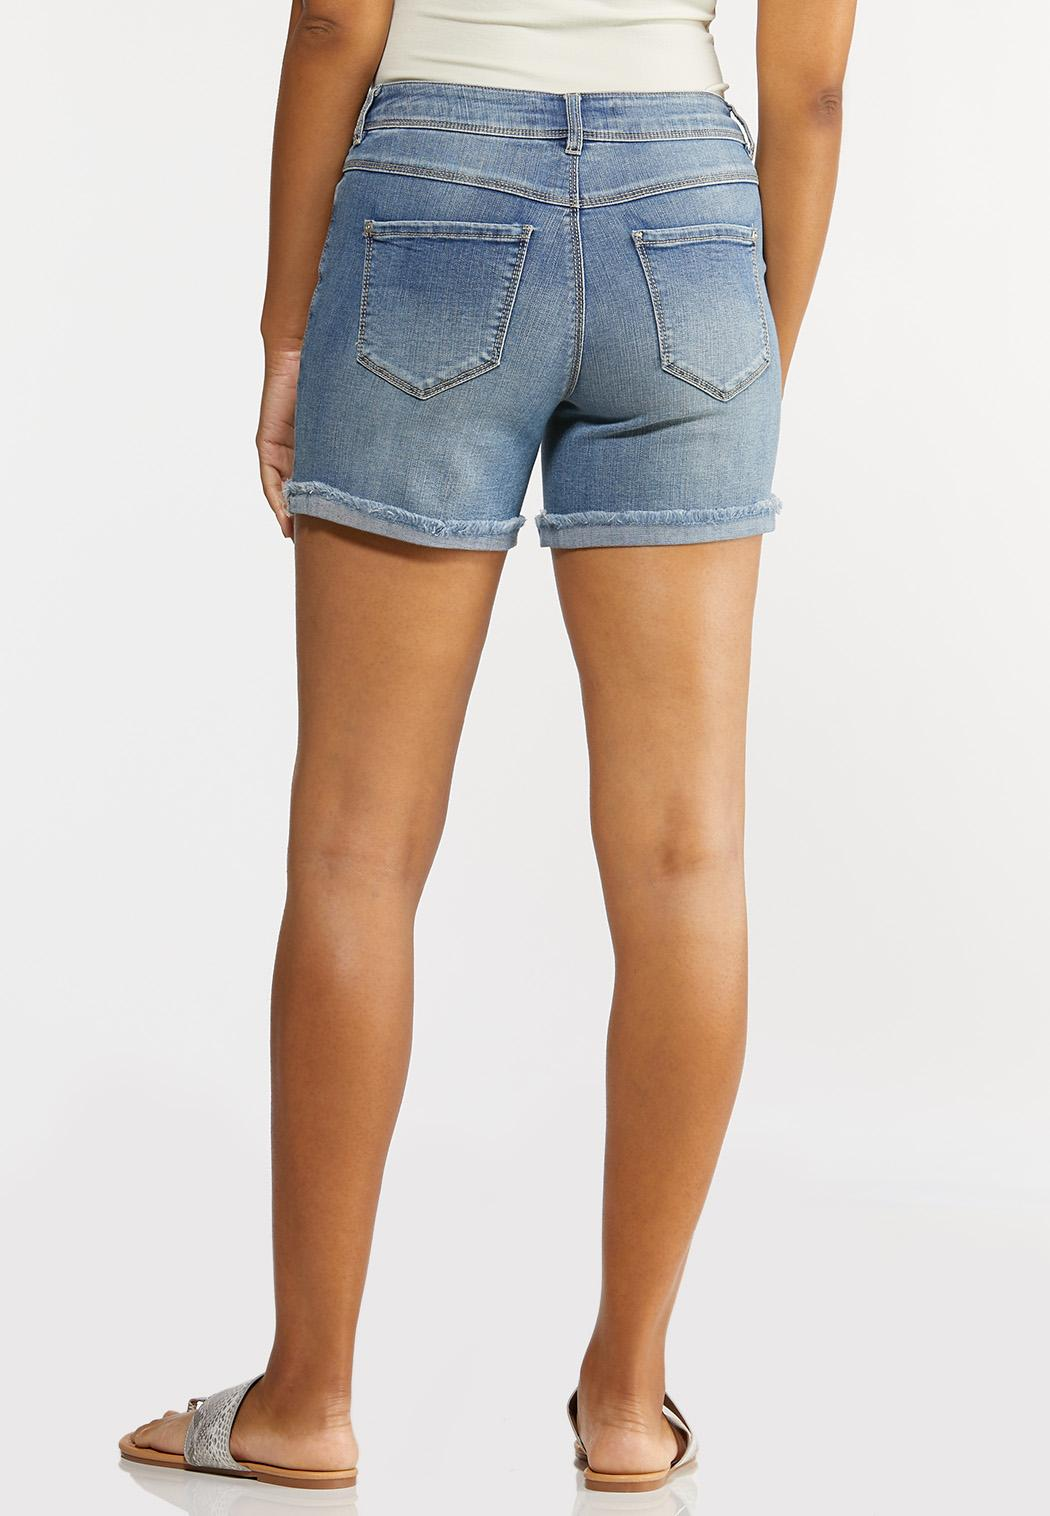 Destructed Denim Shorts (Item #44230843)